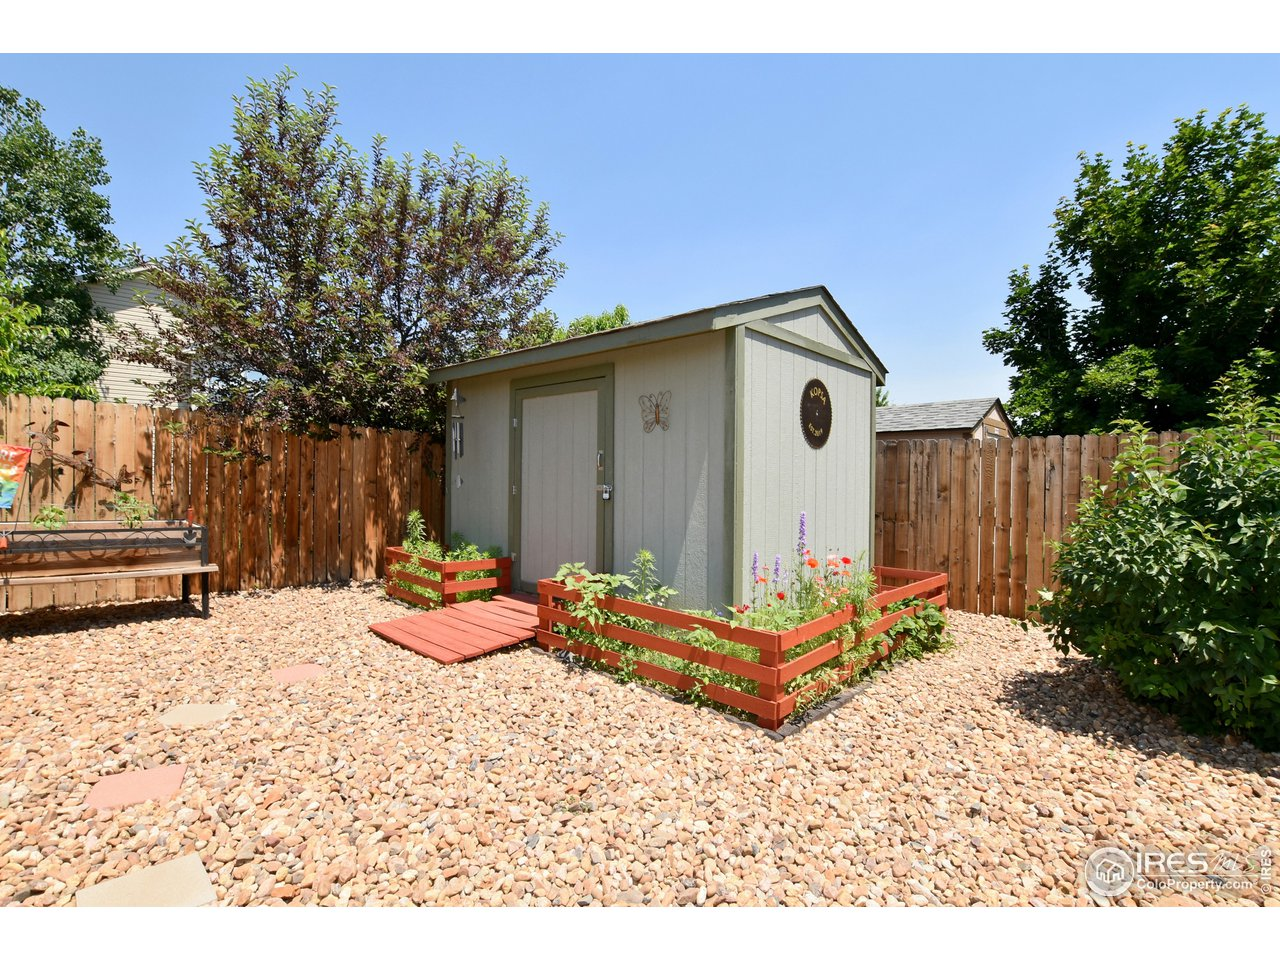 10' X !2' Out building with Ramp, surrounded by flower beds